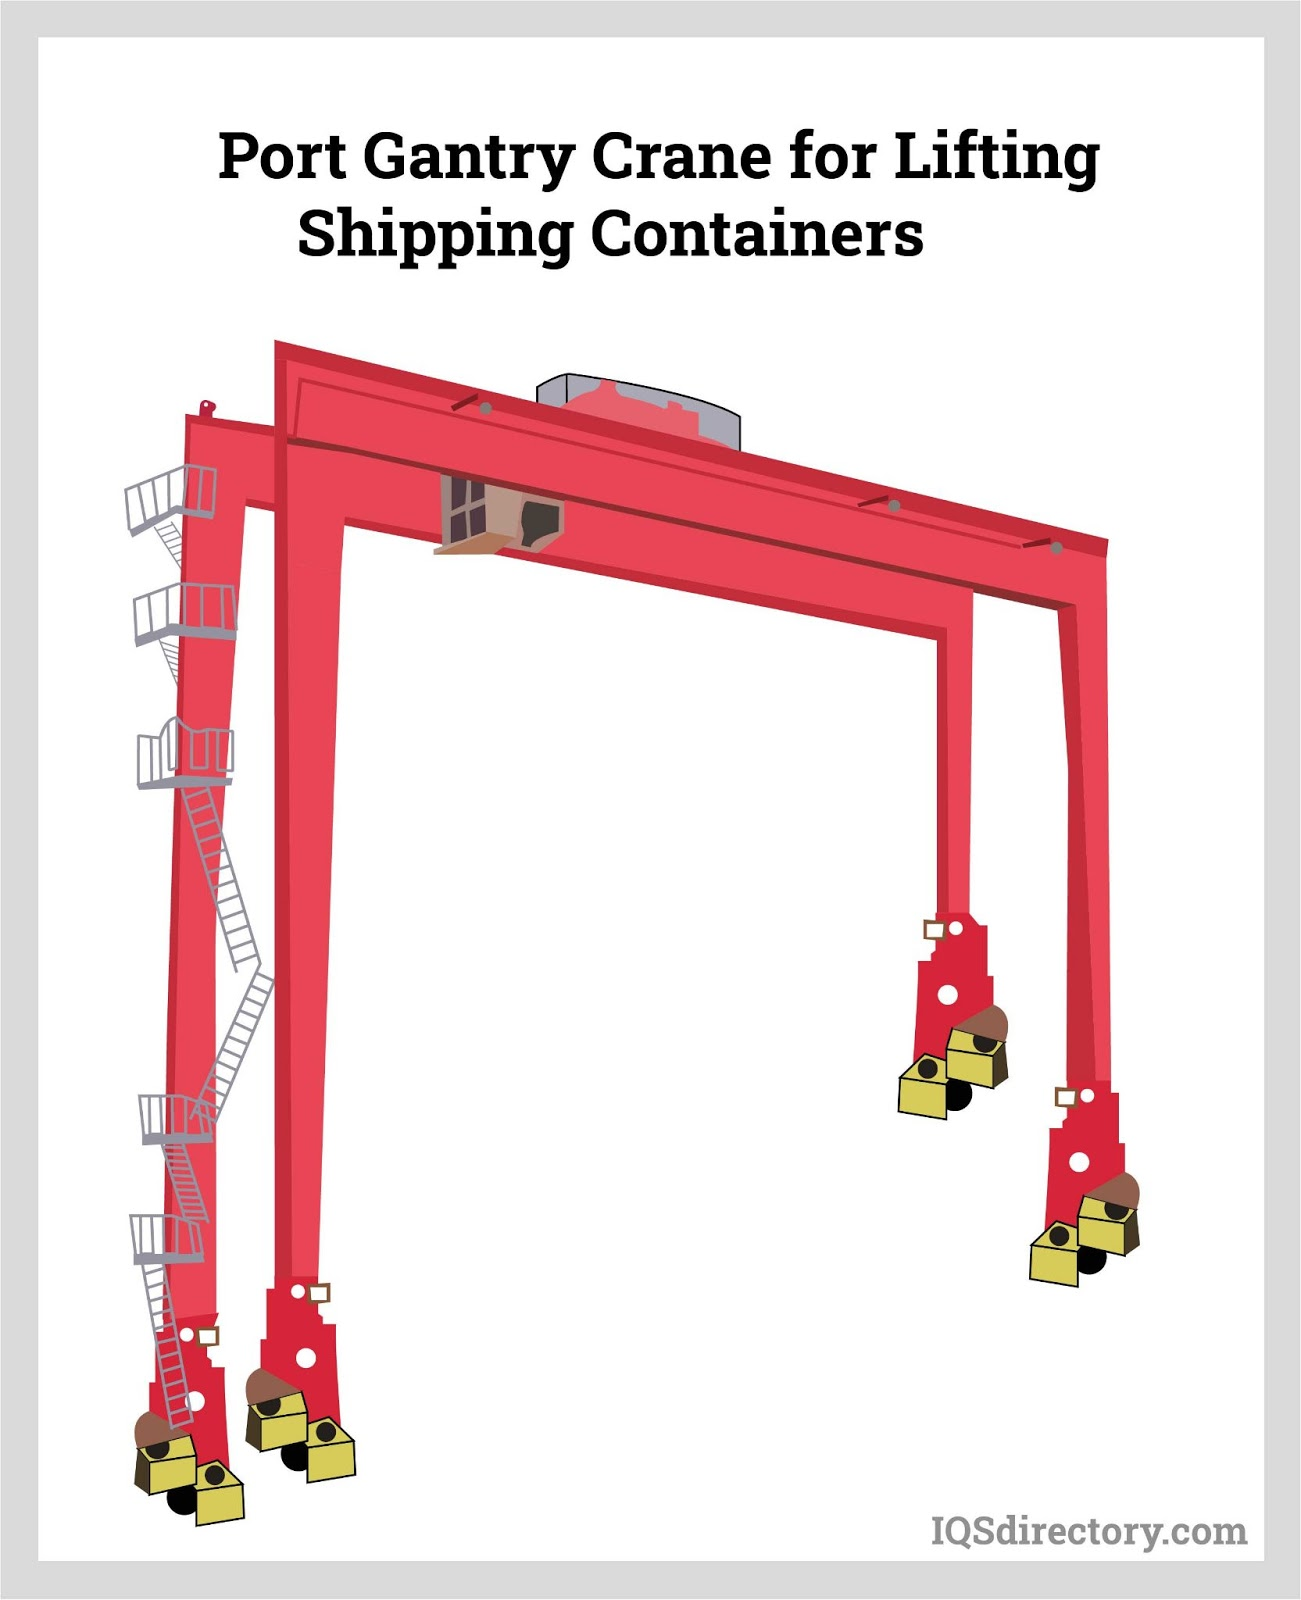 Port Gantry Crane for Lifting Shipping Containers